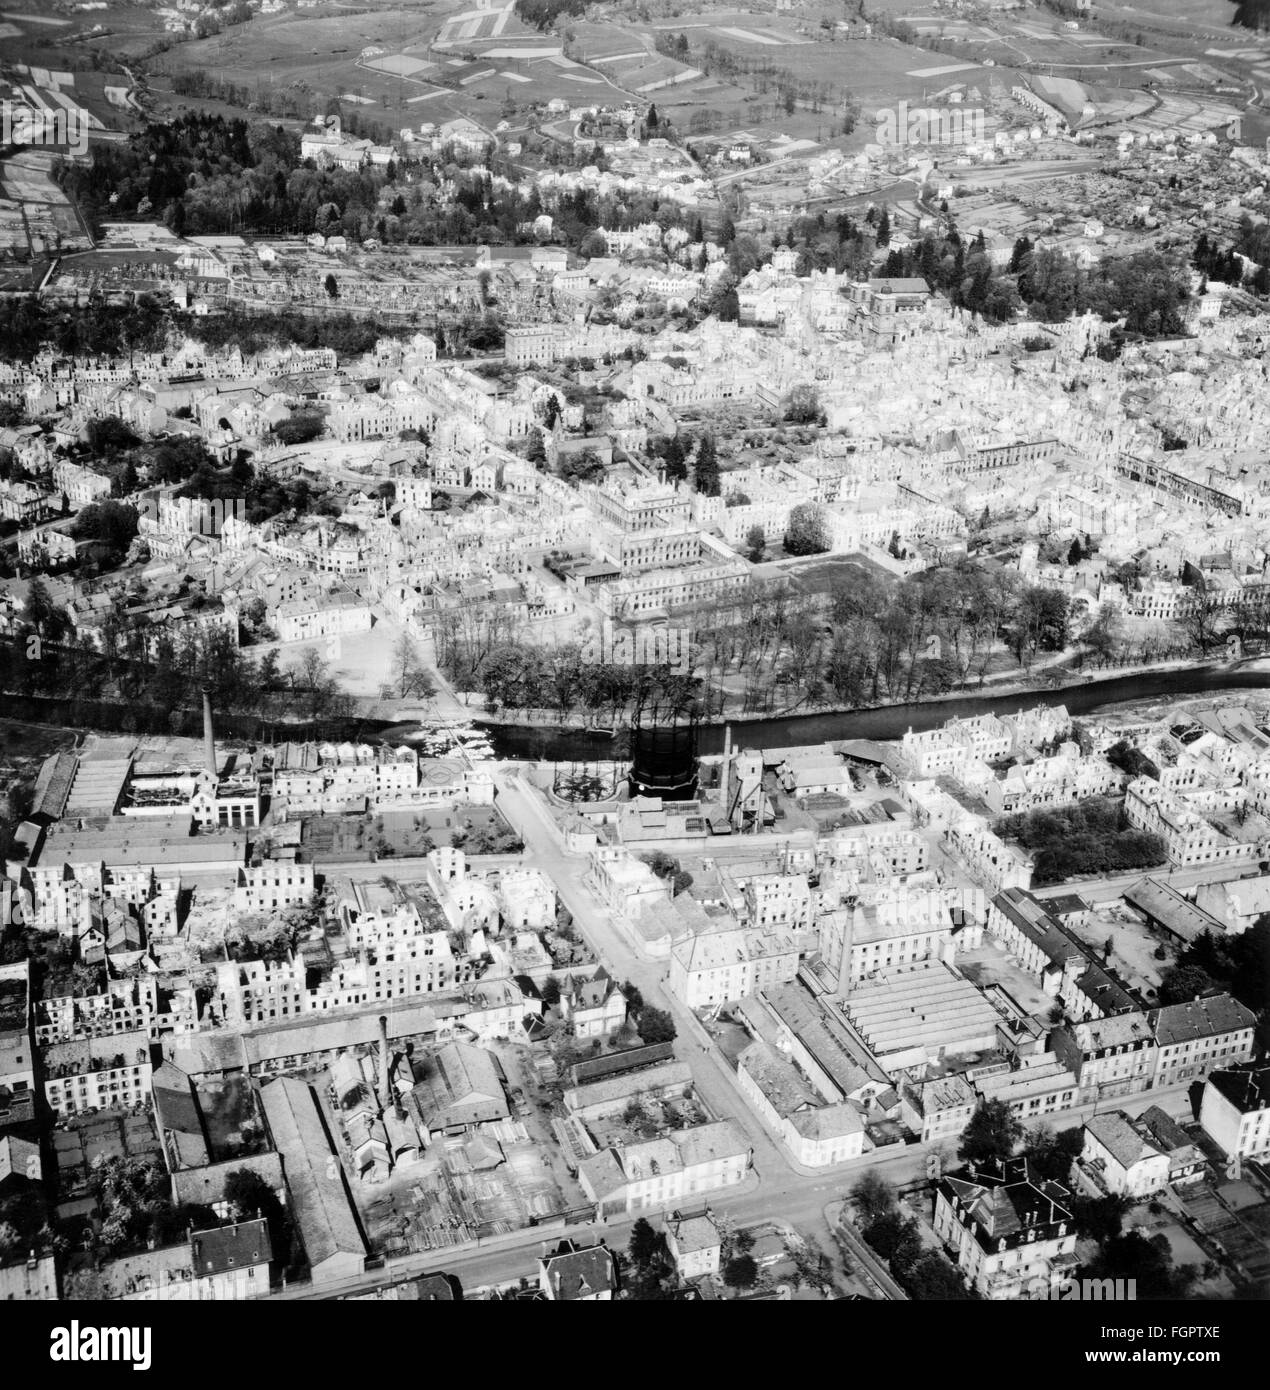 postwar period, destroyed towns/cities, France, Saint-Die-des-Vosges, aerial view of the destroyed town with river - Stock Image